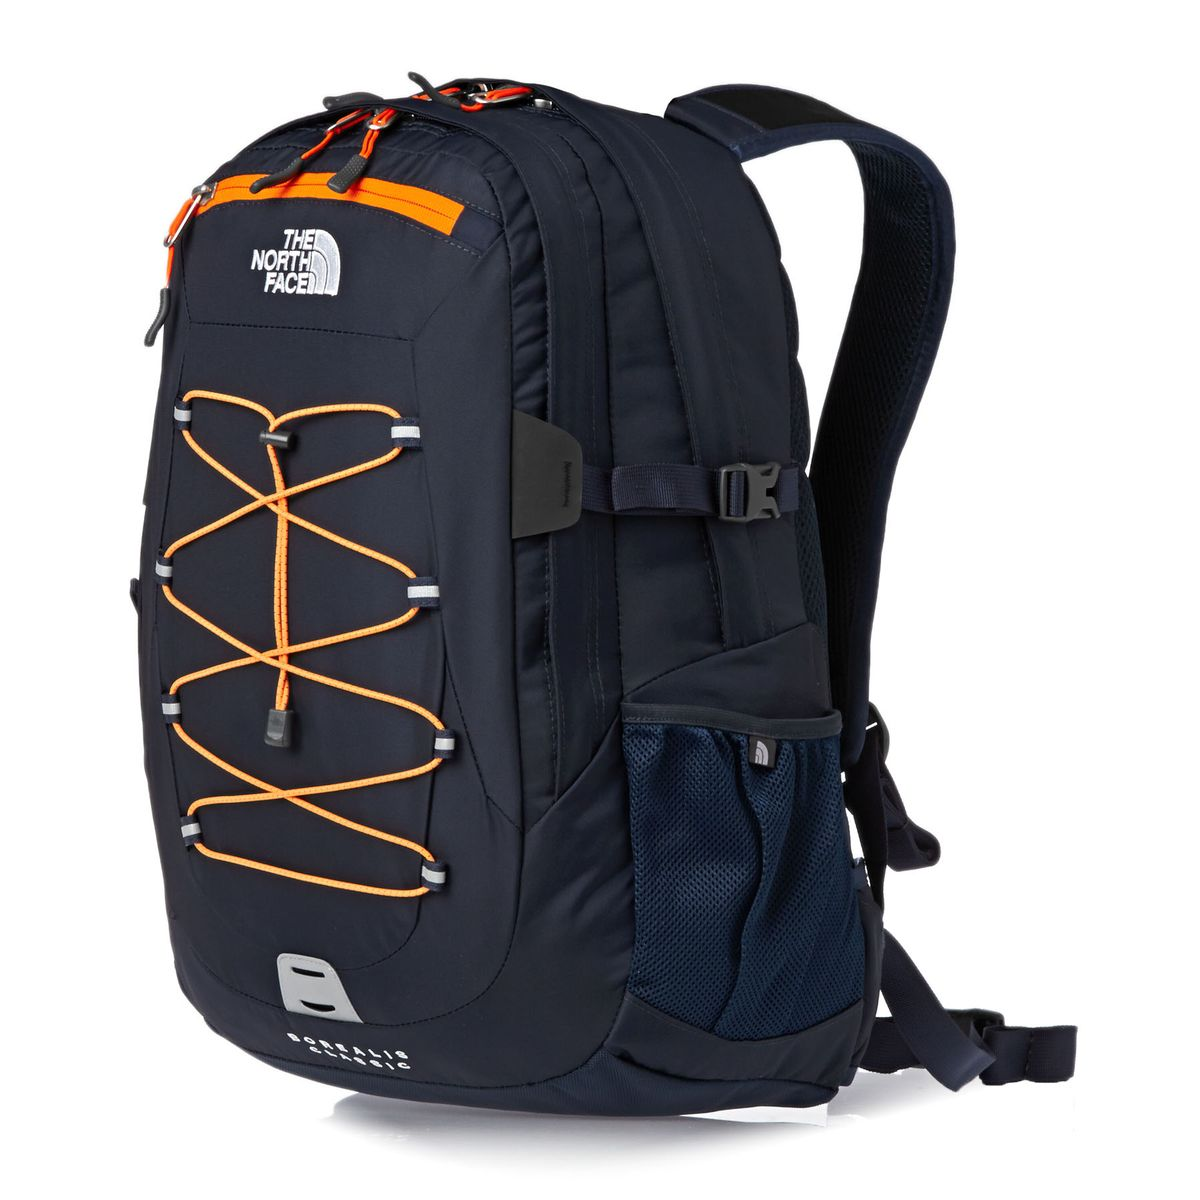 the-north-face-backpacks-the-north-face-borealis-classic-backpack-urban-navy